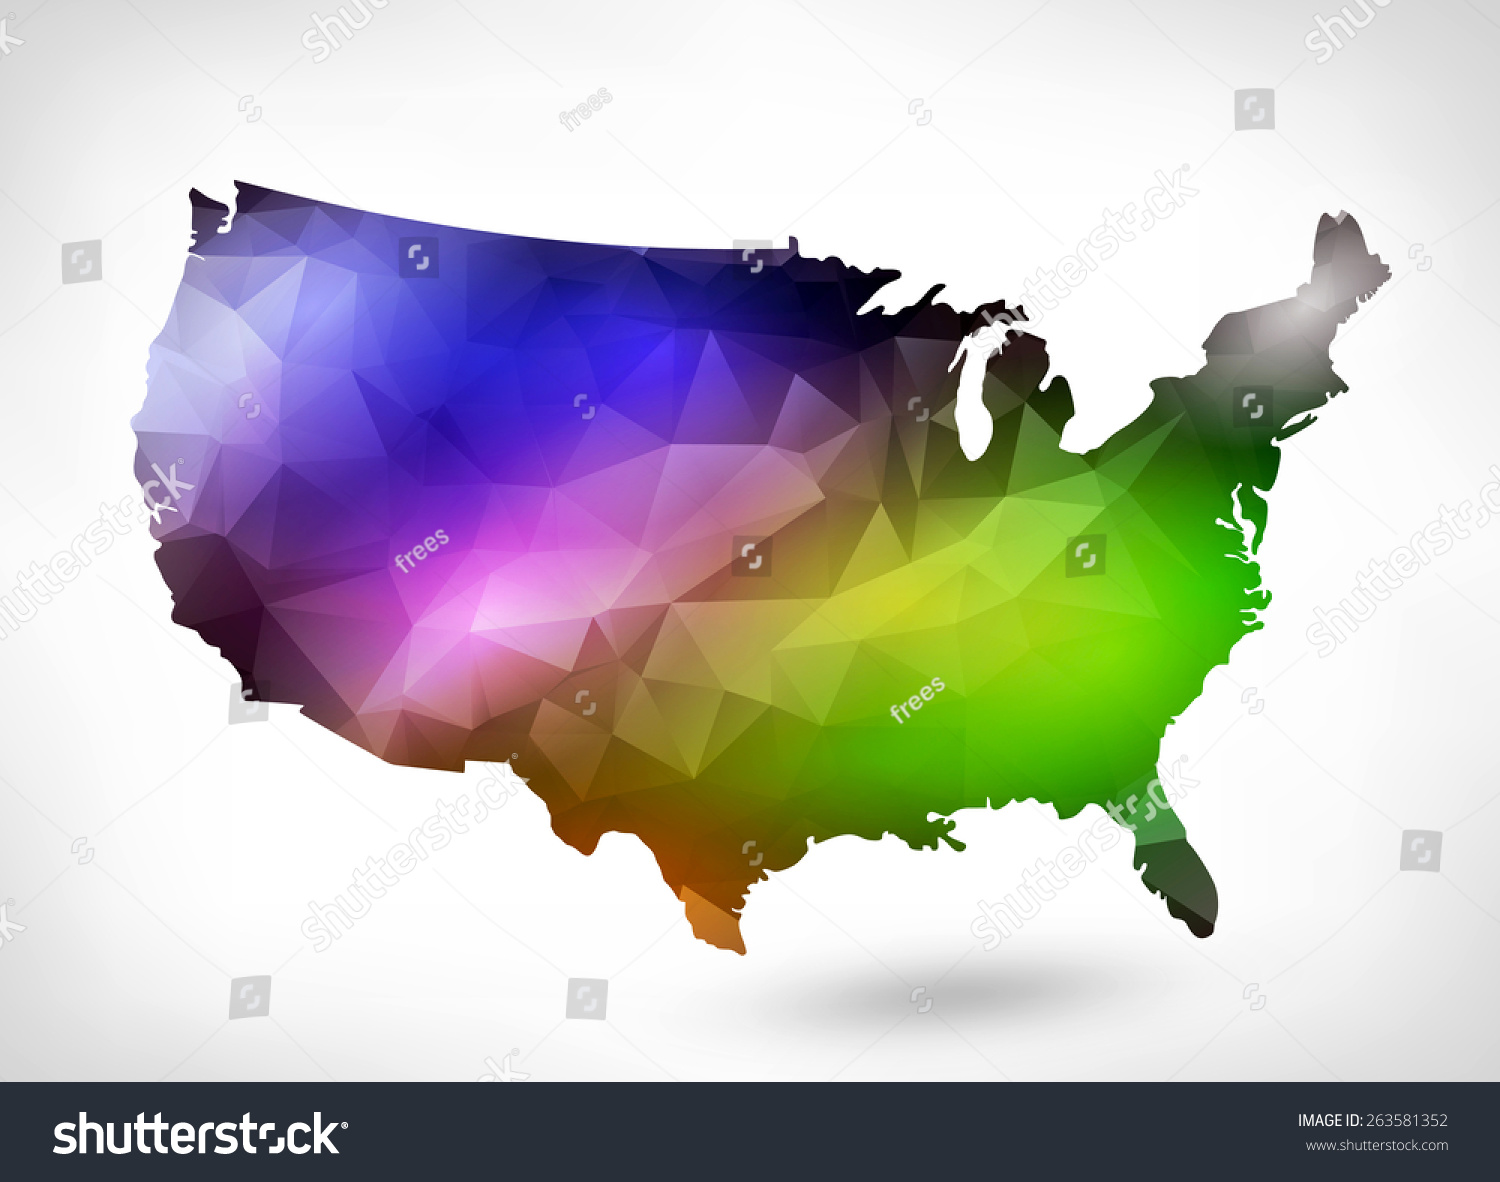 Rainbow color map usa geometric triangle stock illustration rainbow color map usa geometric triangle stock illustration 263581352 shutterstock gumiabroncs Image collections